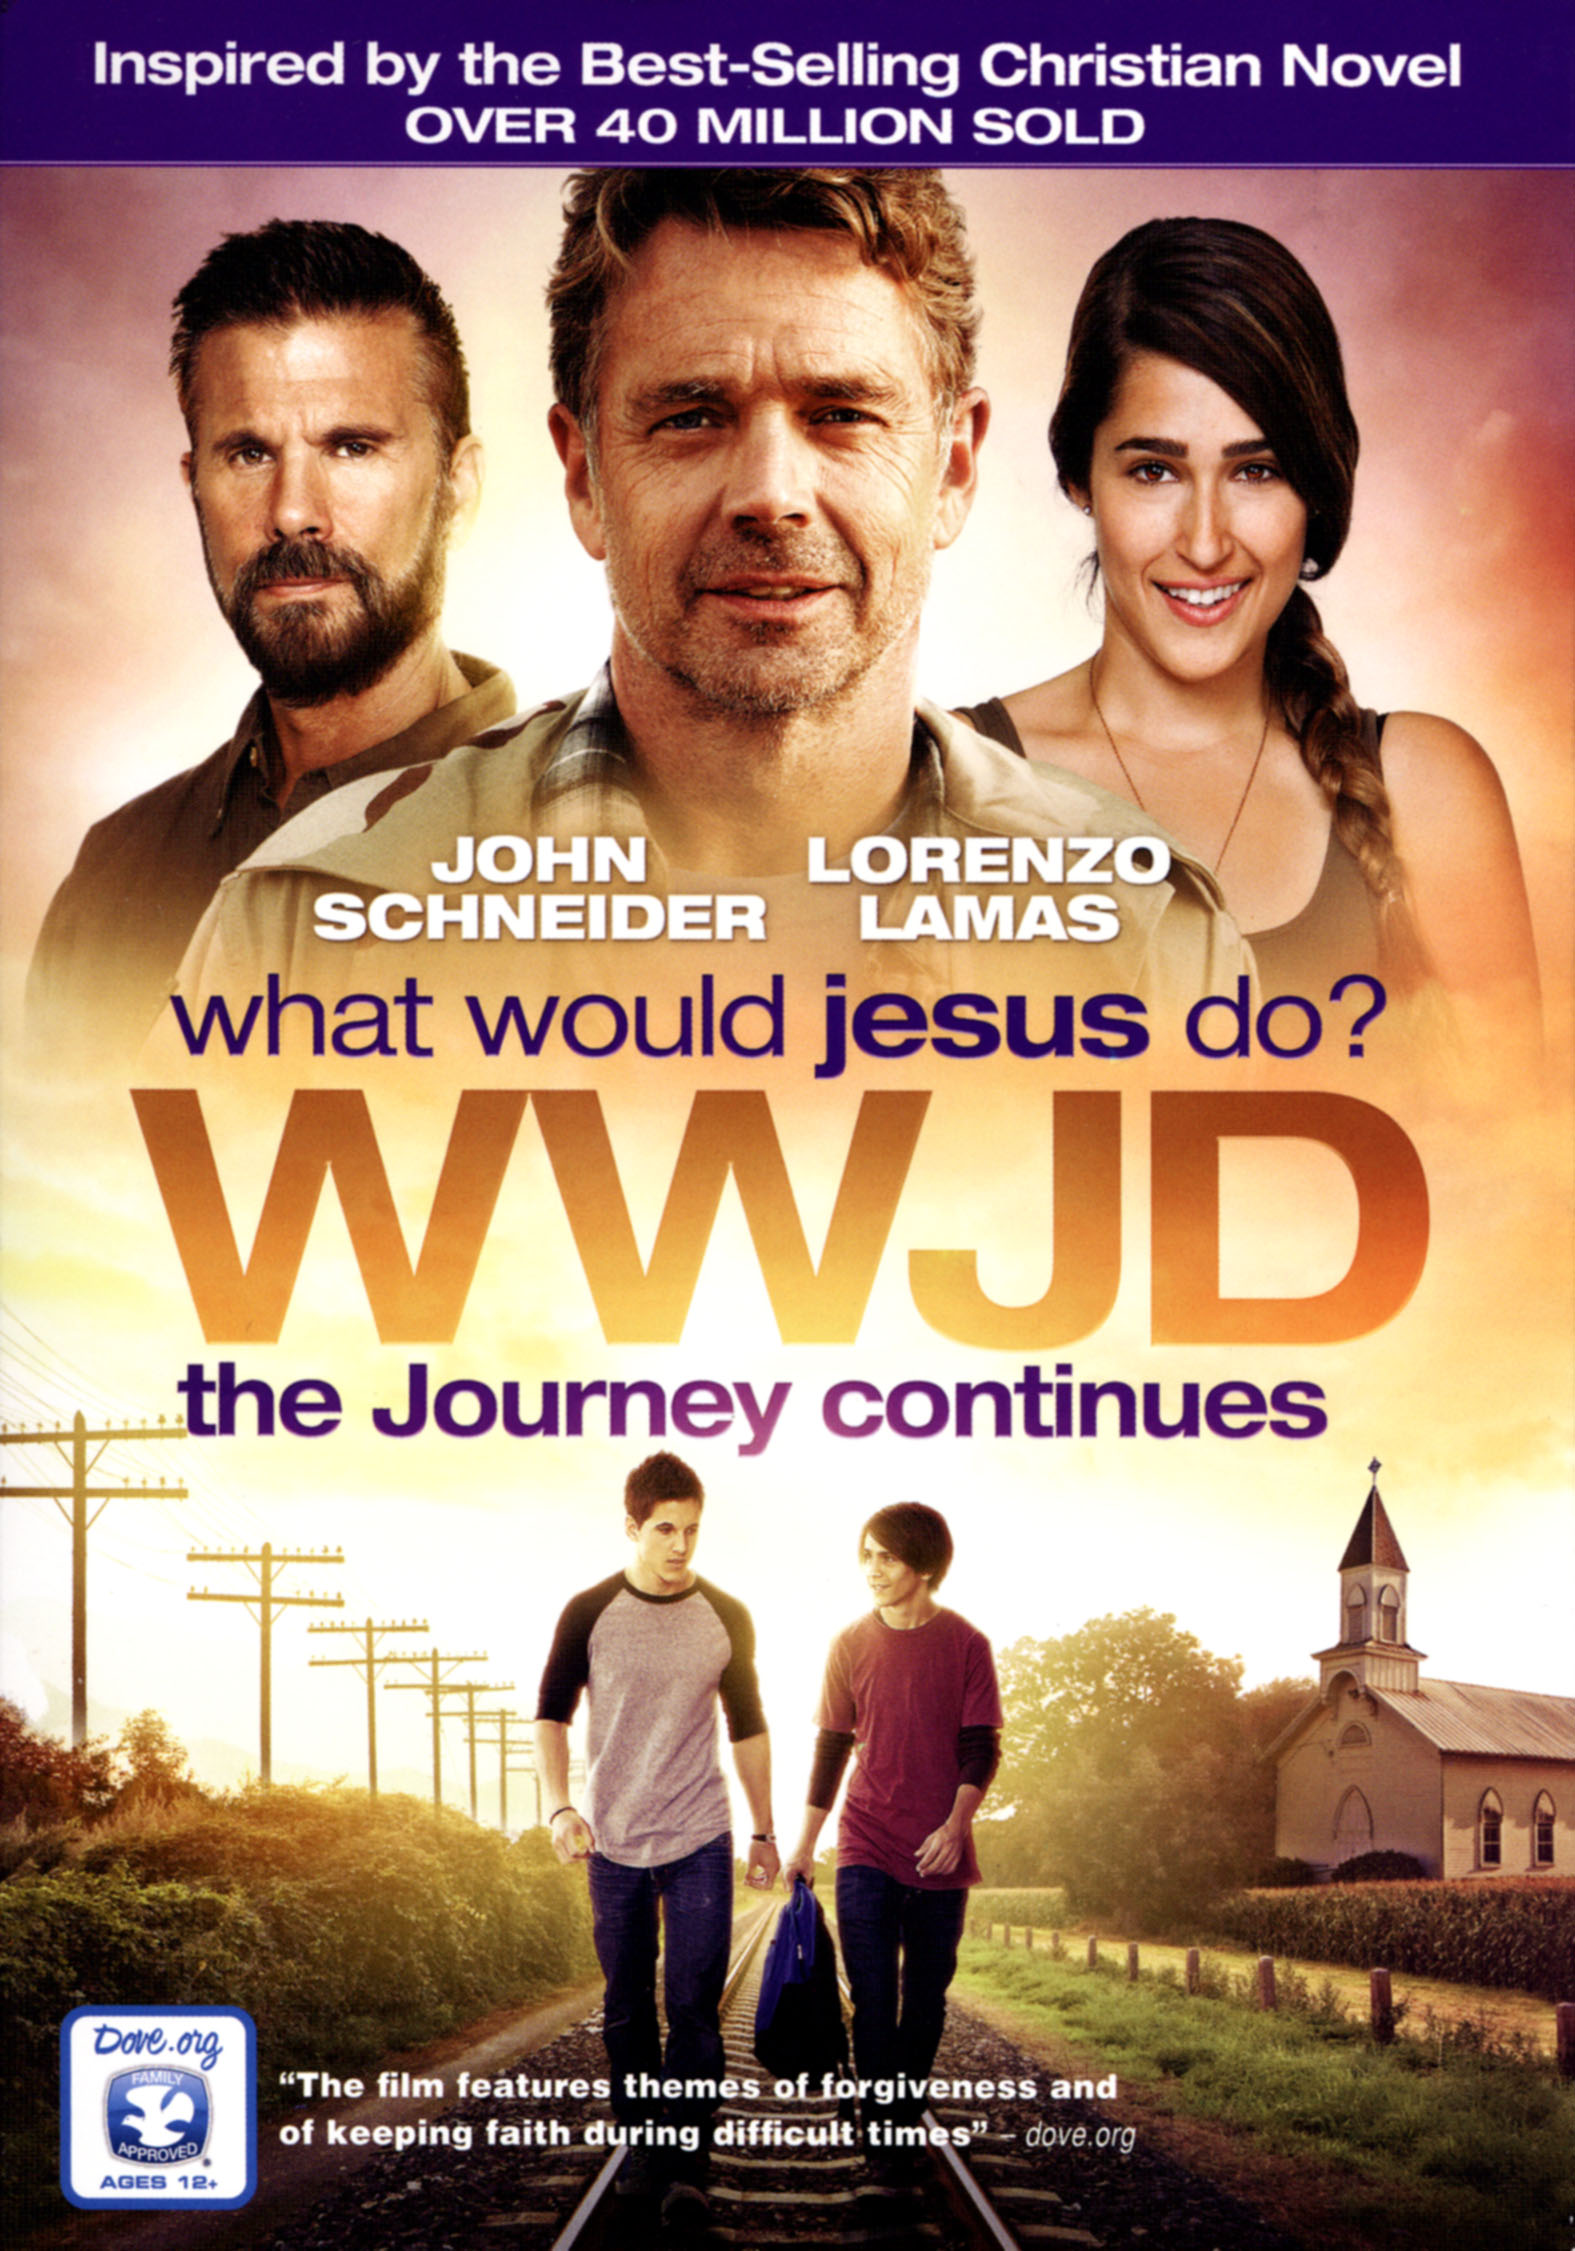 WWJD: What Would Jesus Do? - The Journey Continues